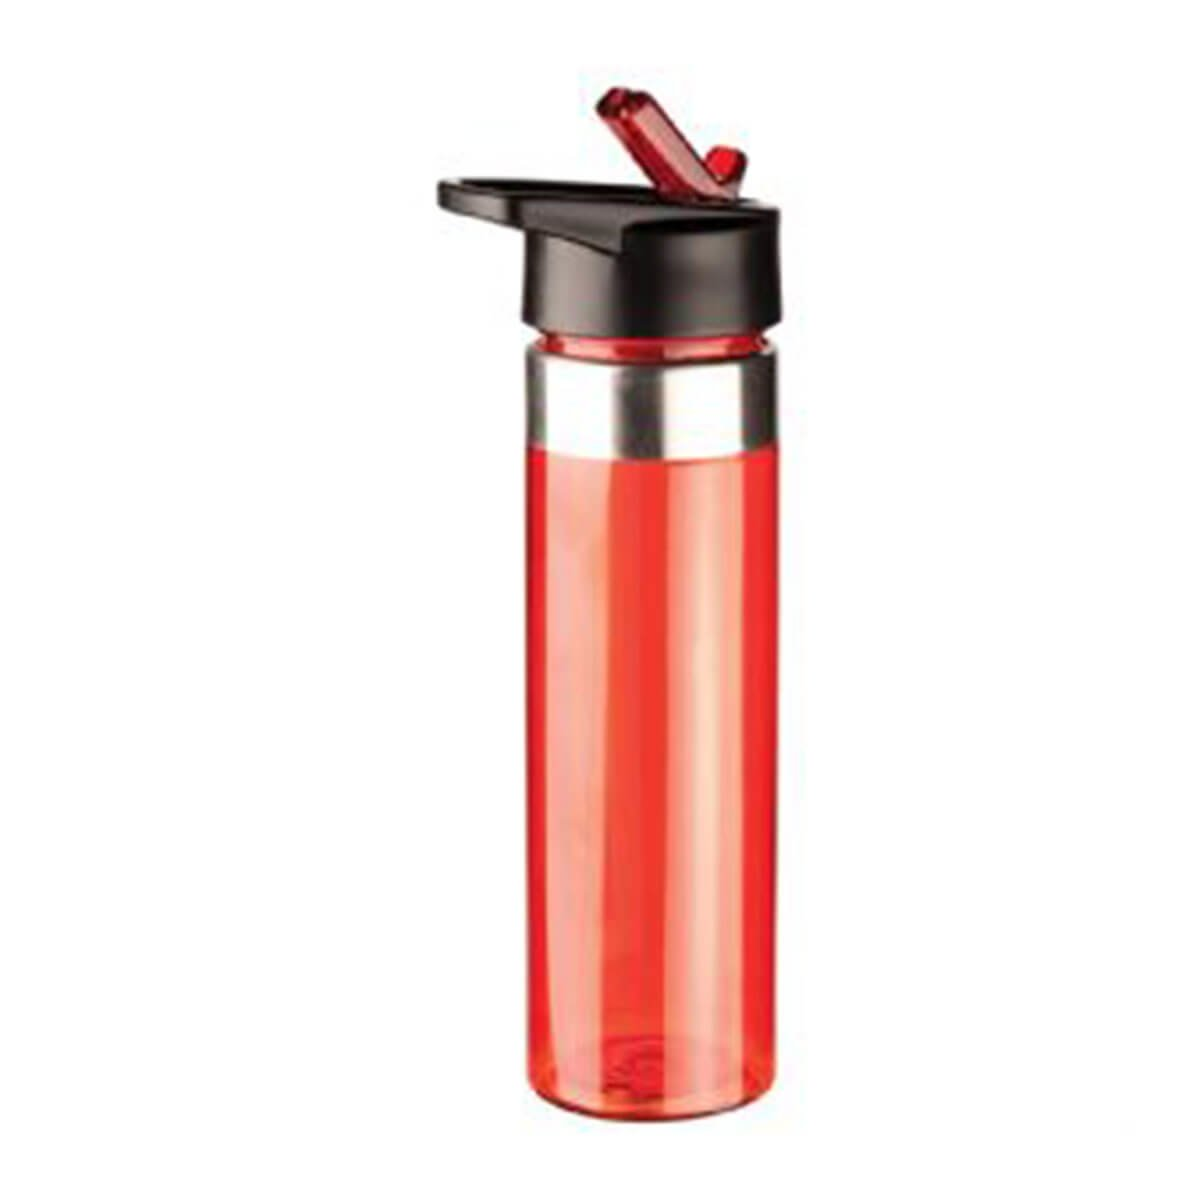 Drink Bottle-Red body with black lid and silver trim.